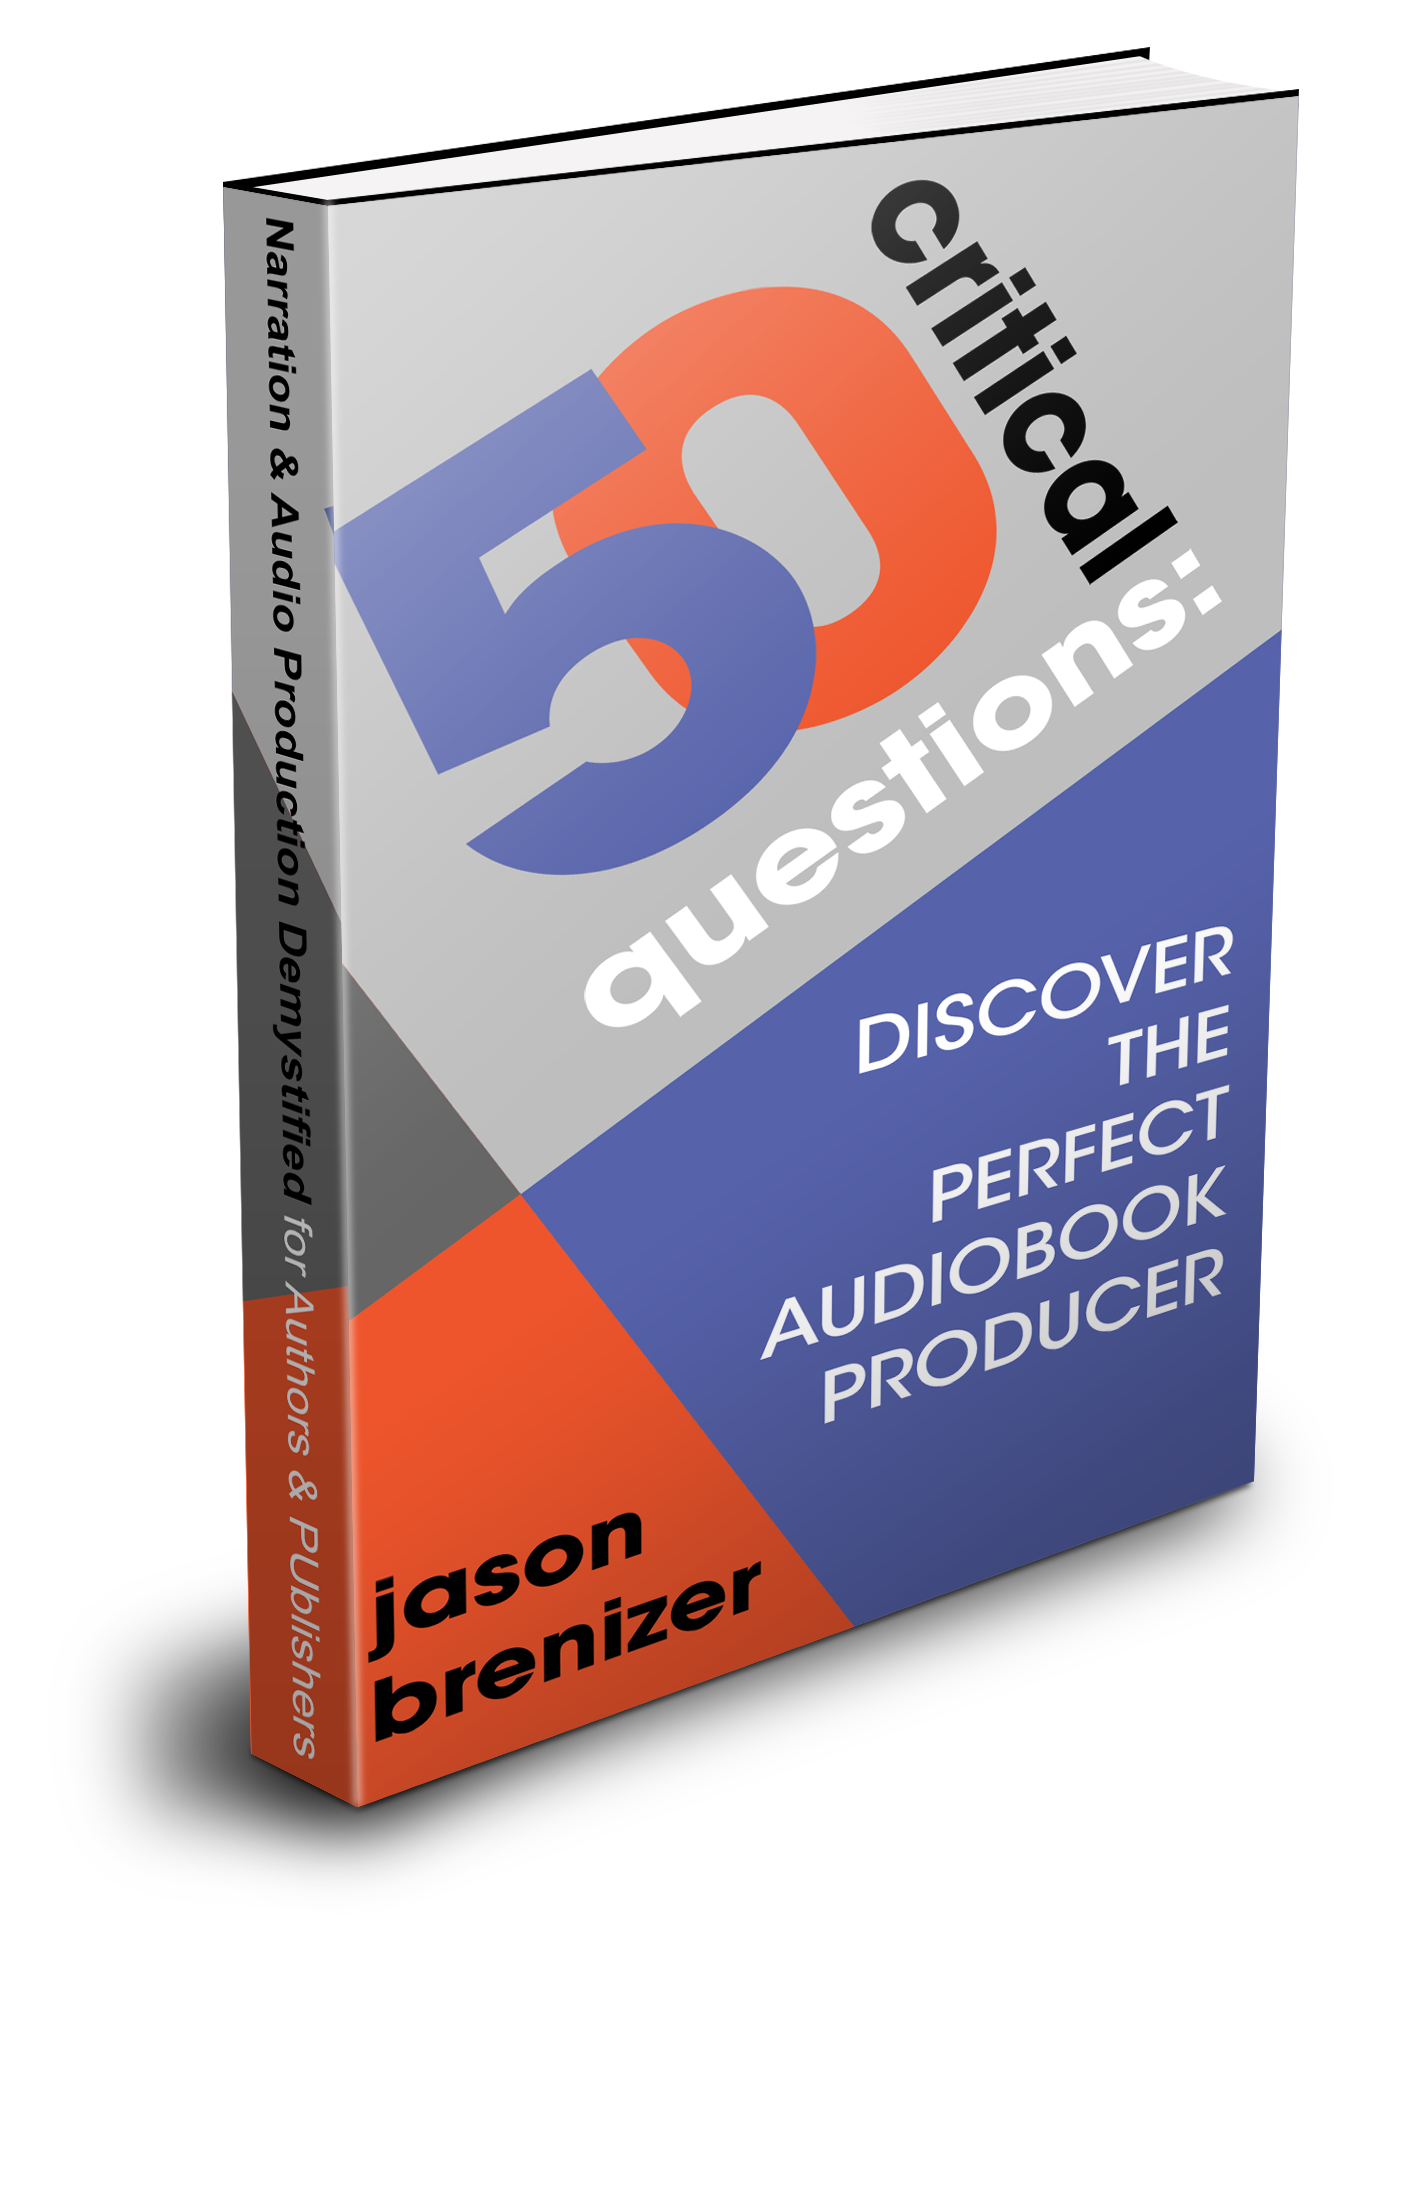 Discover Audiobook Producer